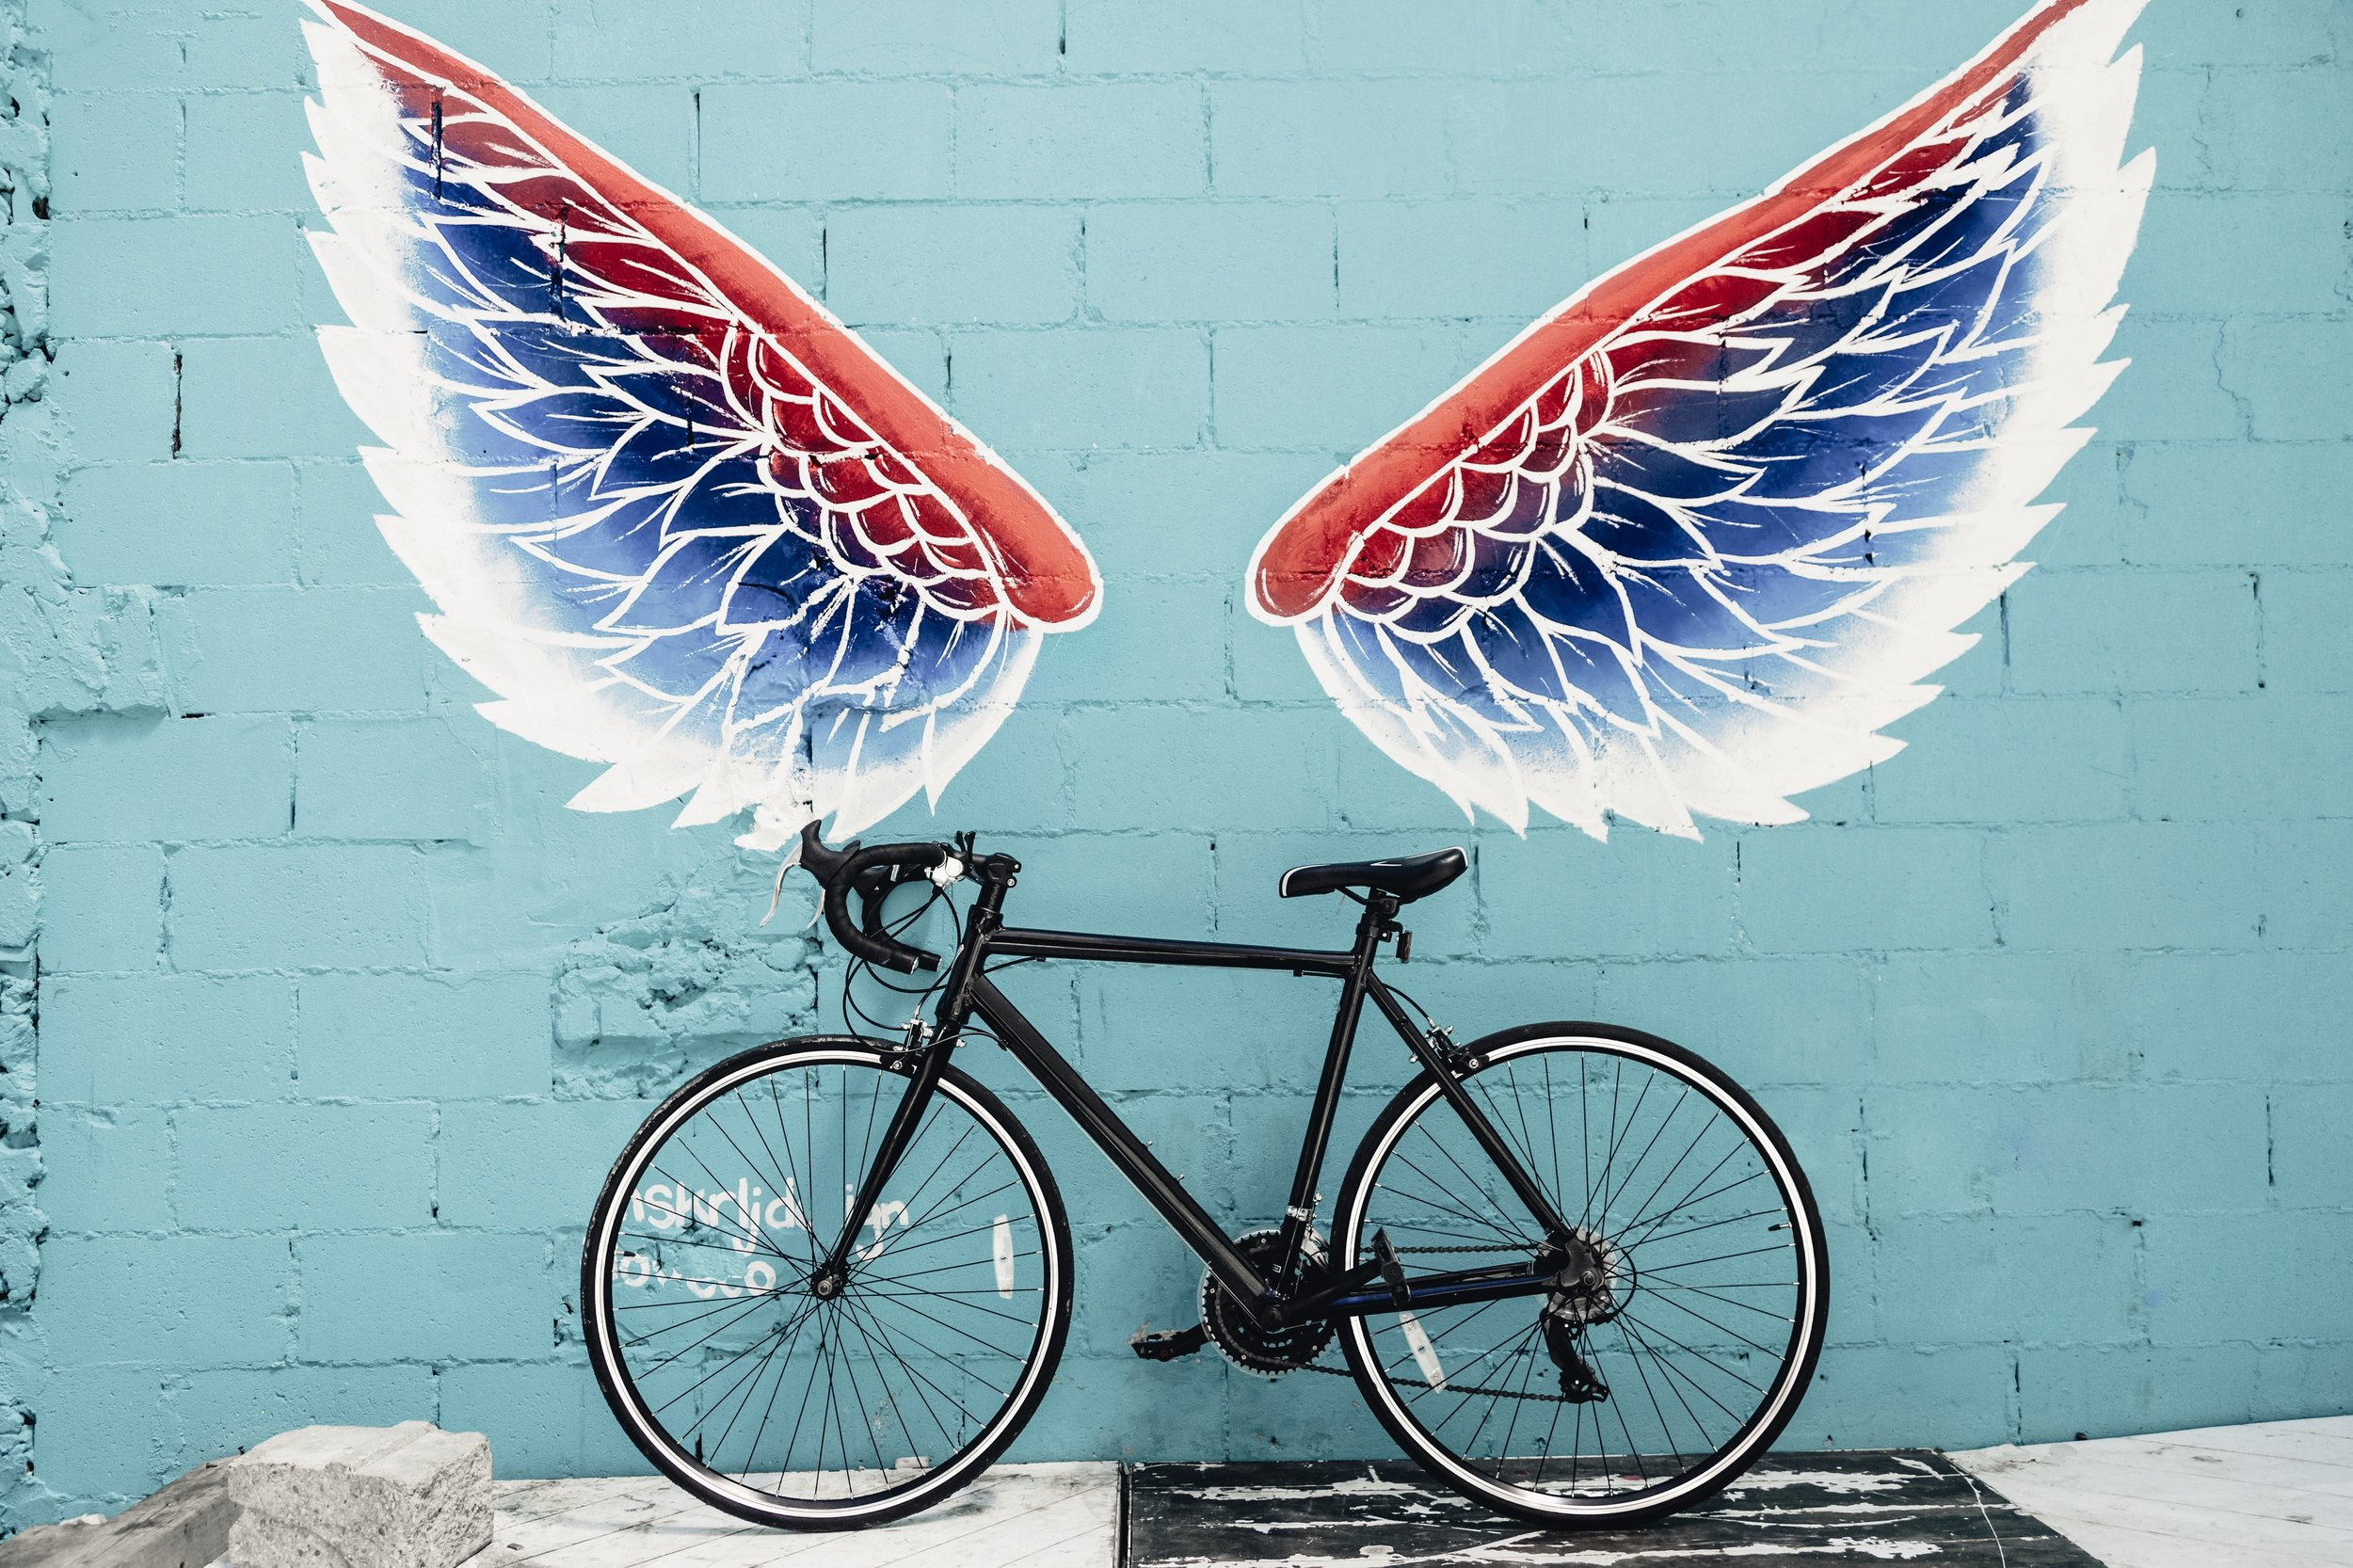 Canva_-_Black_Road_Bike_Leaning_on_Red-blue-and-white_Wing_Graffiti_Wall.jpg